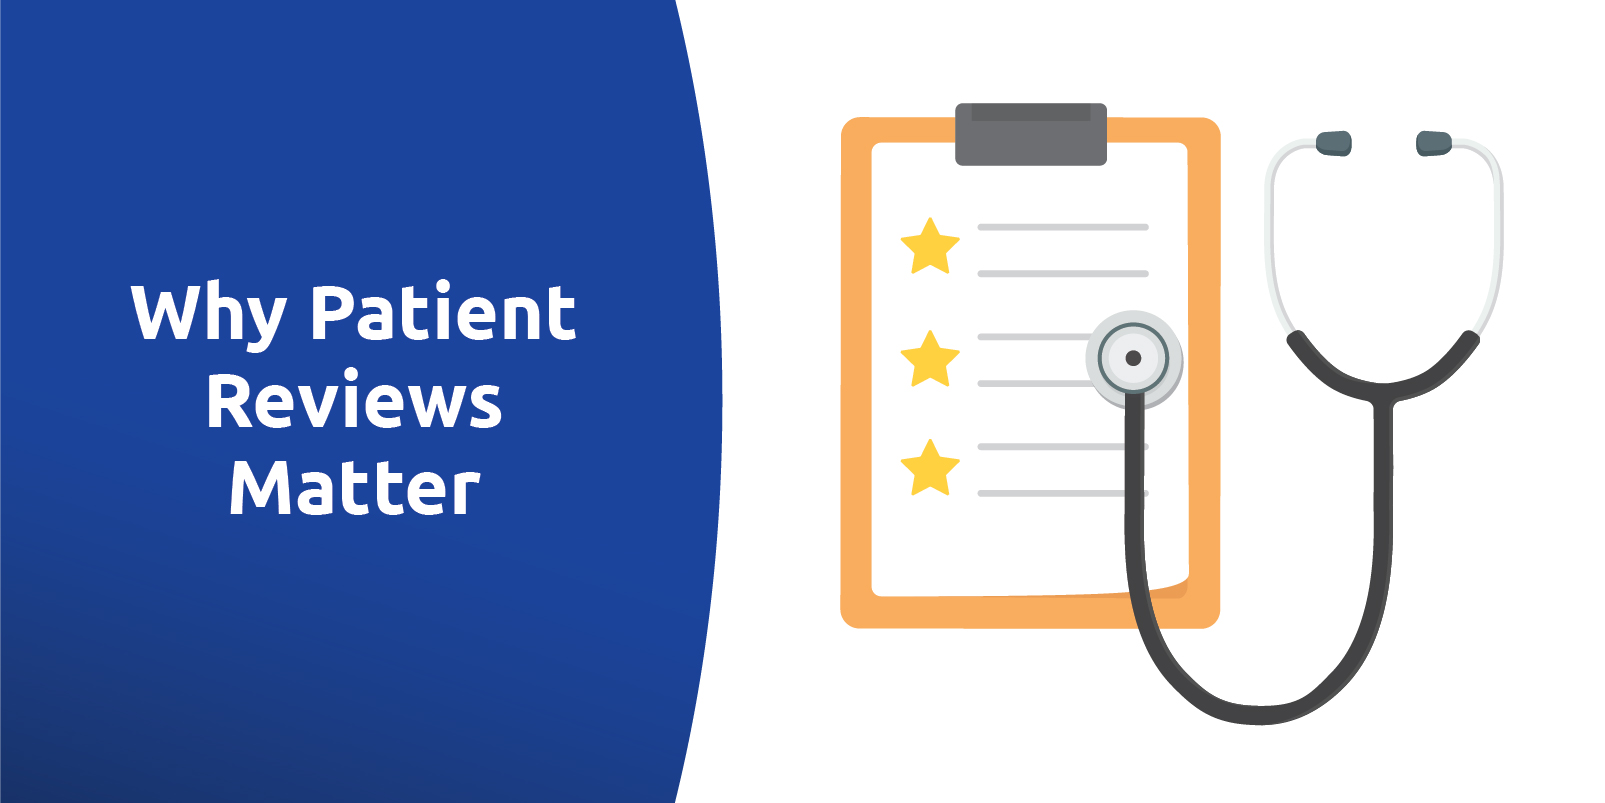 Why patient reviews are critical for healthcare facilities